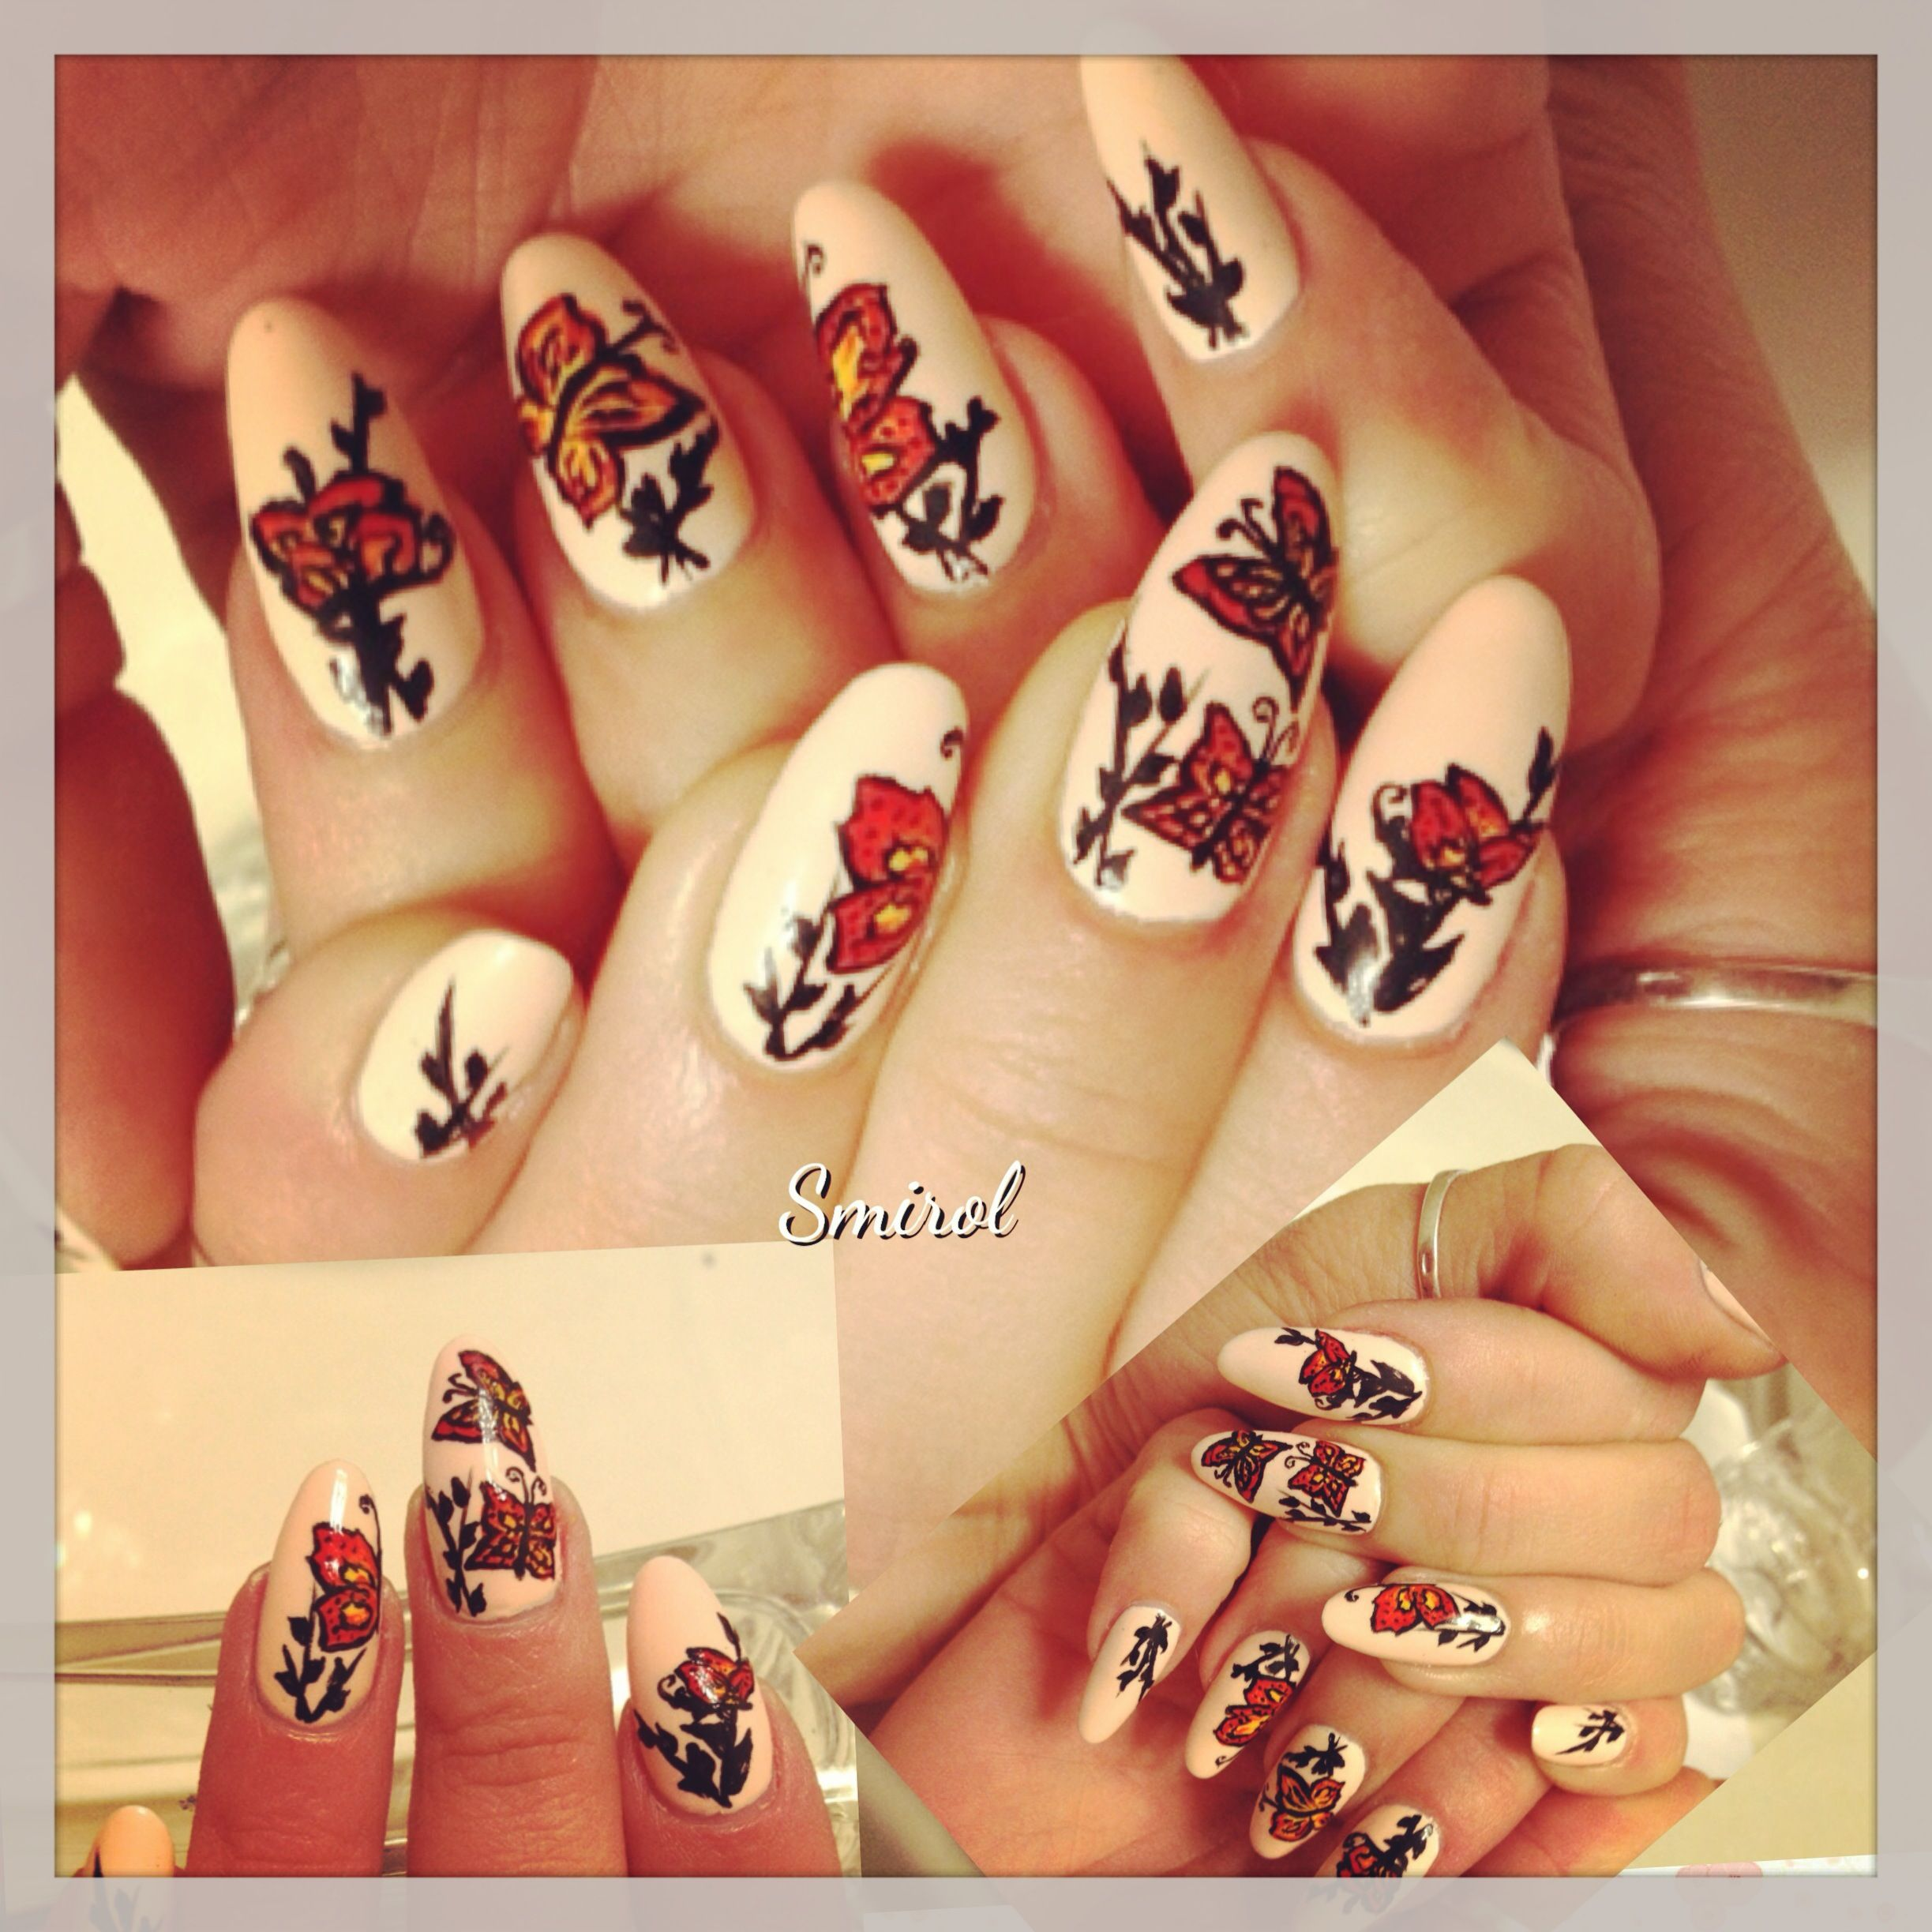 #Butterly #naildesign! #nailart #nails #freehand